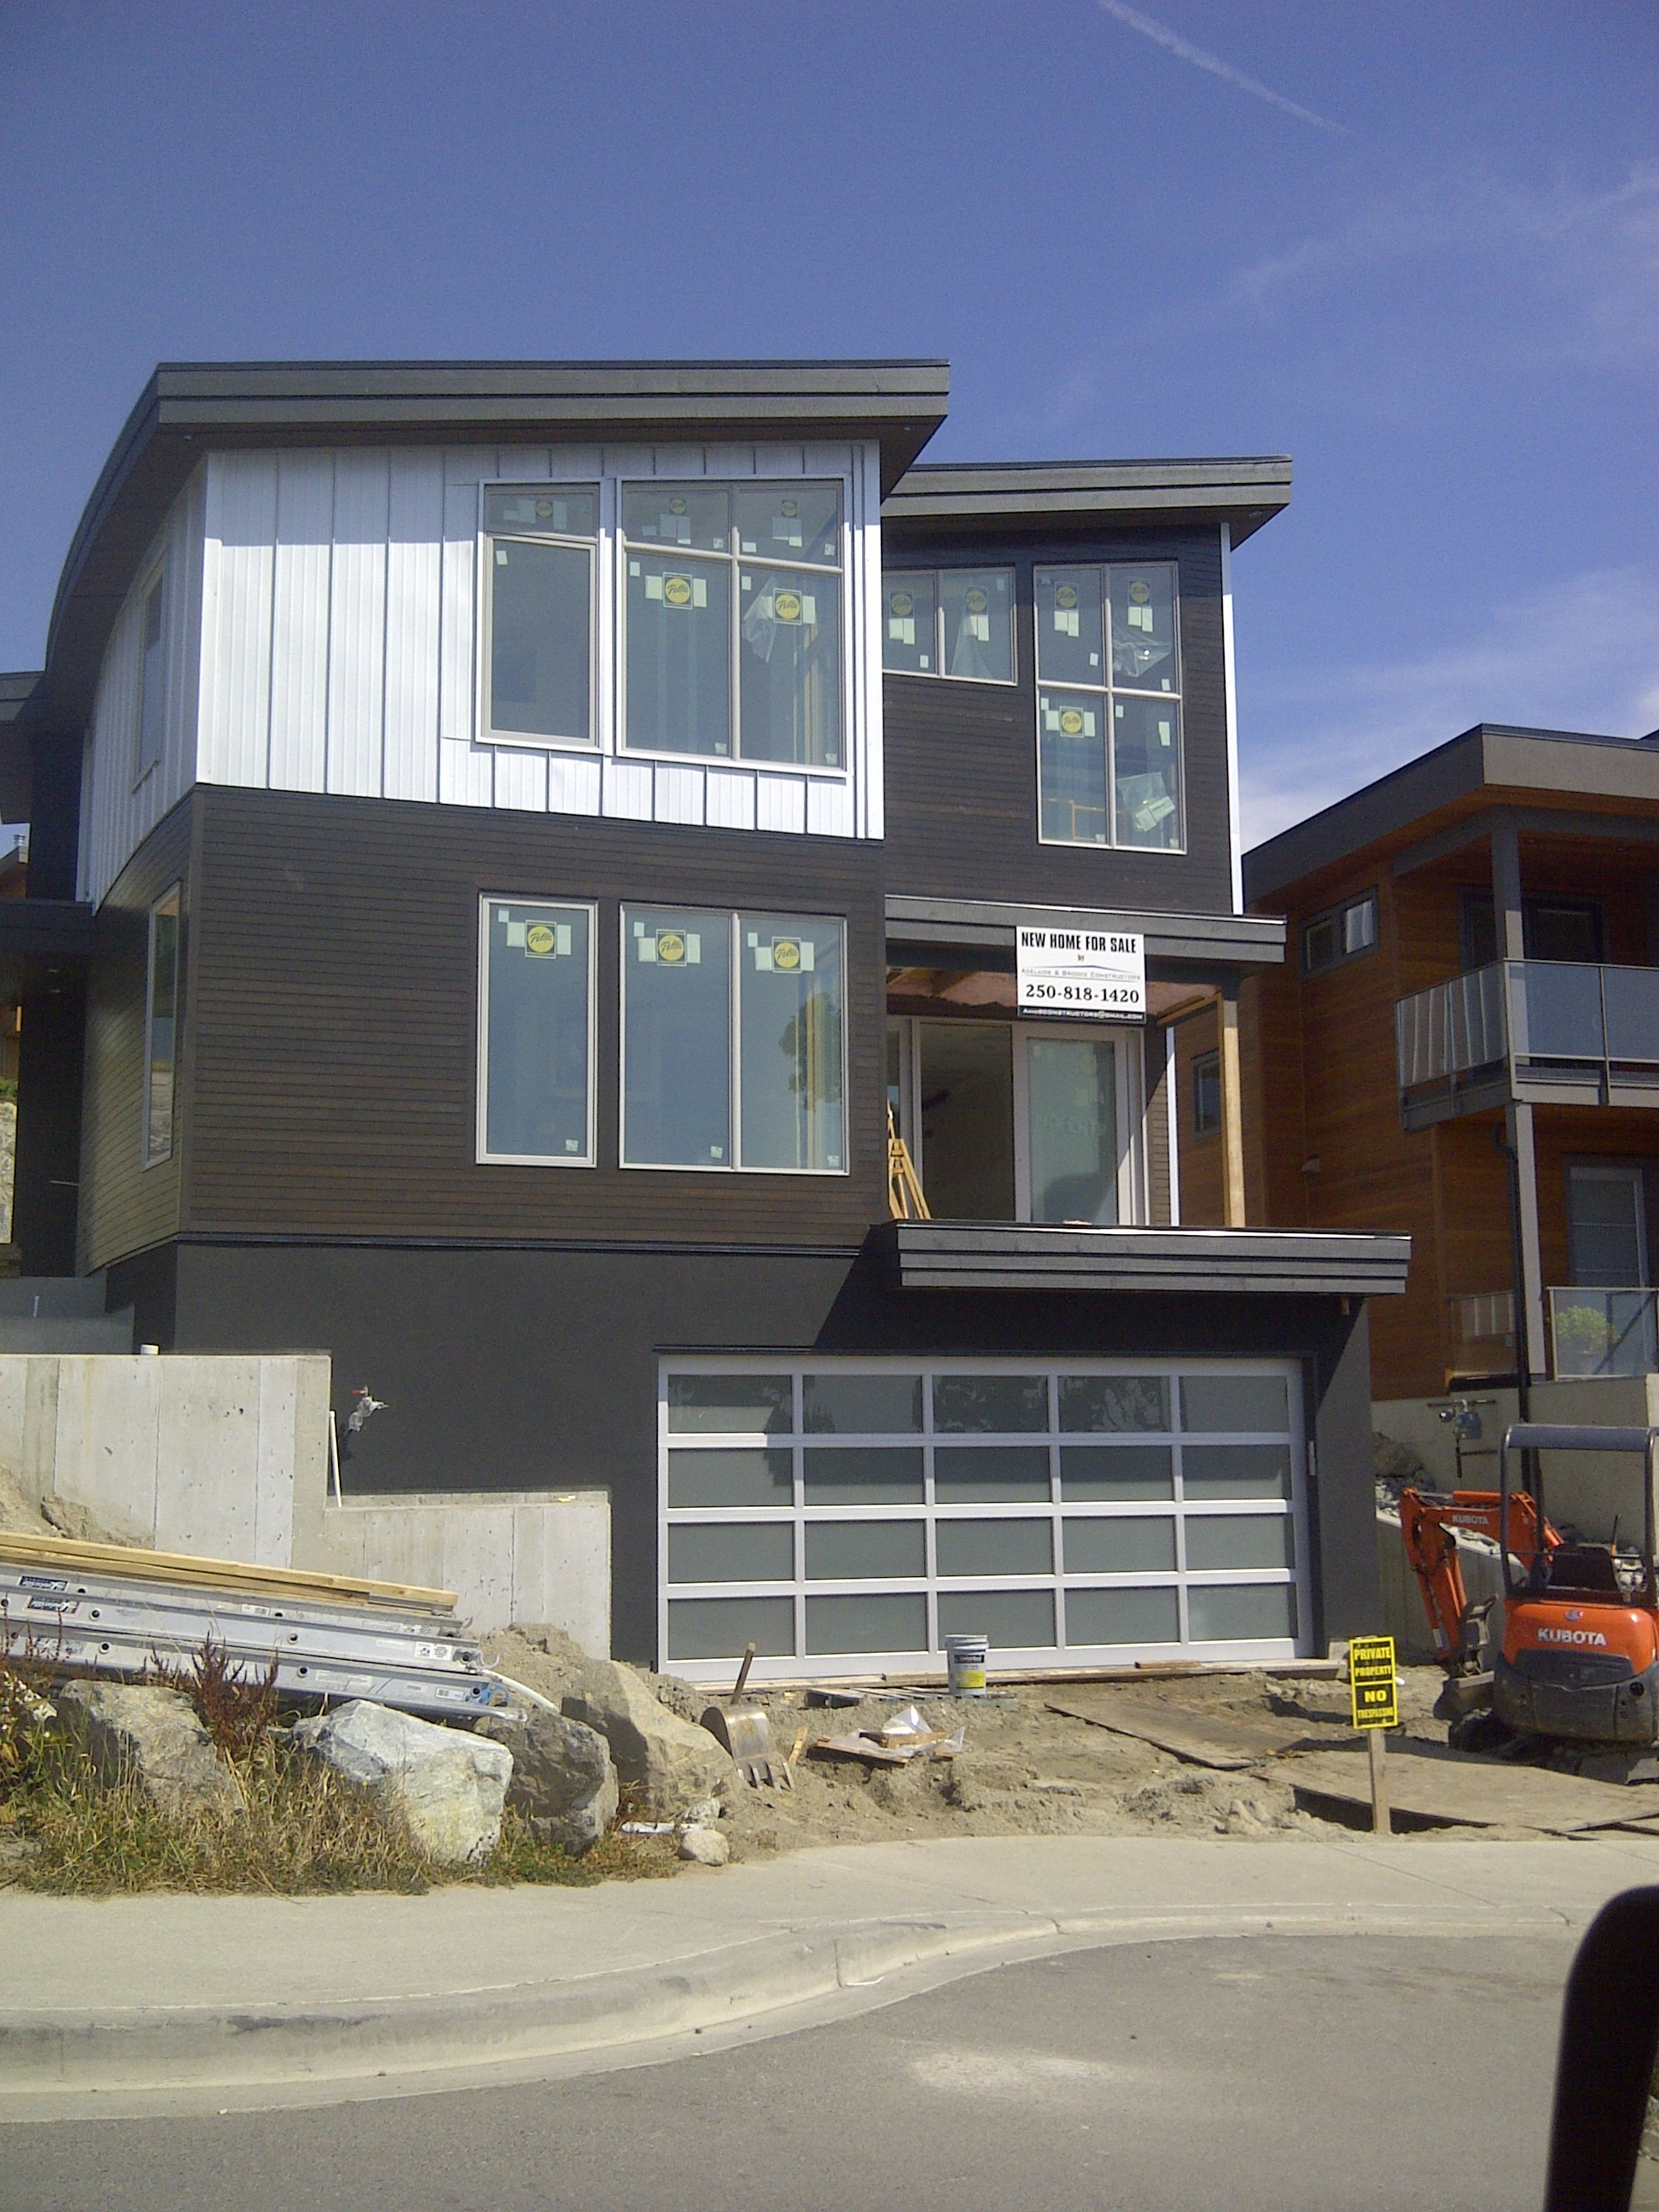 A new build on Rainbow in Victoria from 2012.